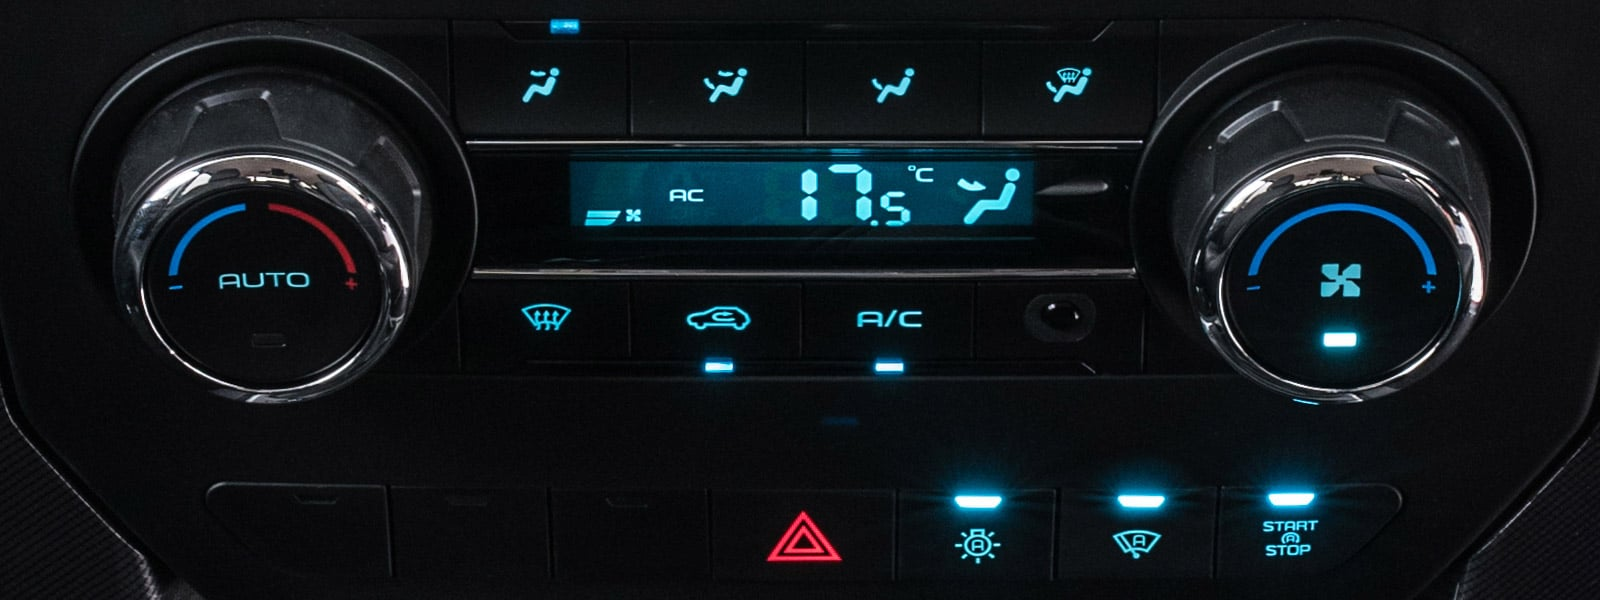 Automatic digital climate controls